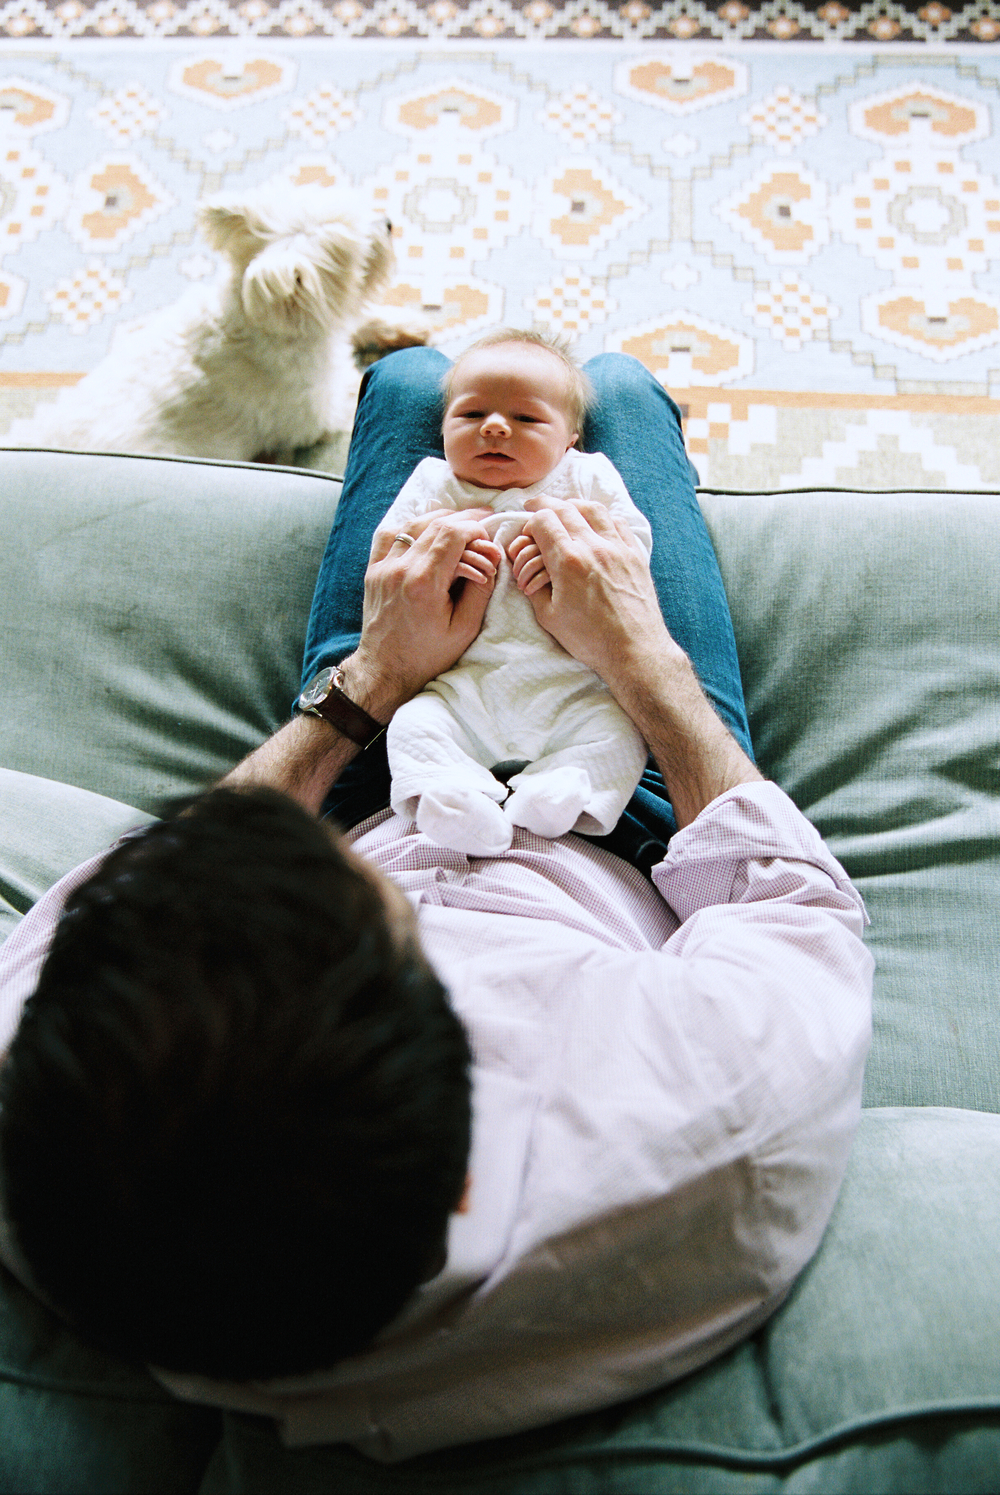 seattle newborn photographer new born baby kids family children home house rachael kruse photography mother father boy boyhood film photographer photography